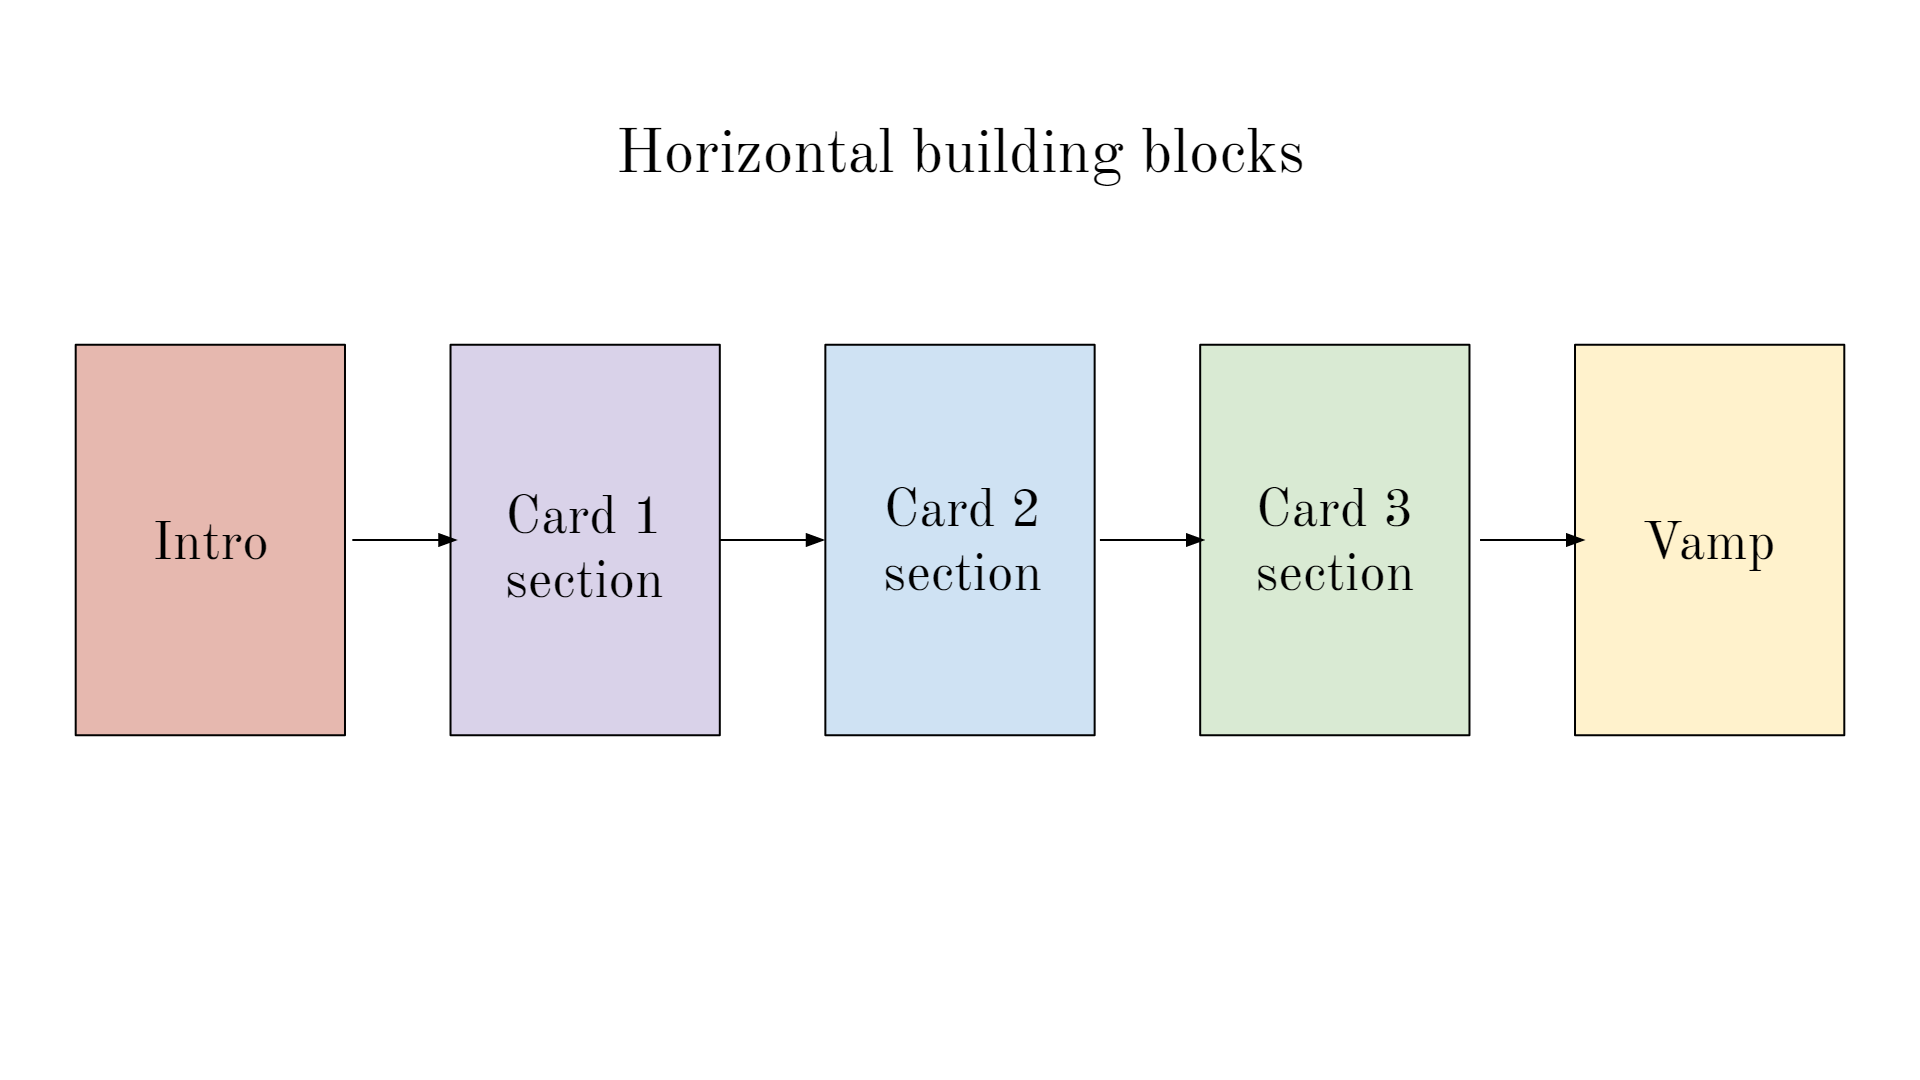 """A process flow diagram with the title """"horizontal building blocks"""". Beneath the title are 5 blocks, with arrows leading from the first to the second, the second to the third, etc. These blocks are """"Intro"""", """"Card 1 section"""", """"Card 2 section"""", """"Card 3 section"""", and lastly, """"Vamp""""."""